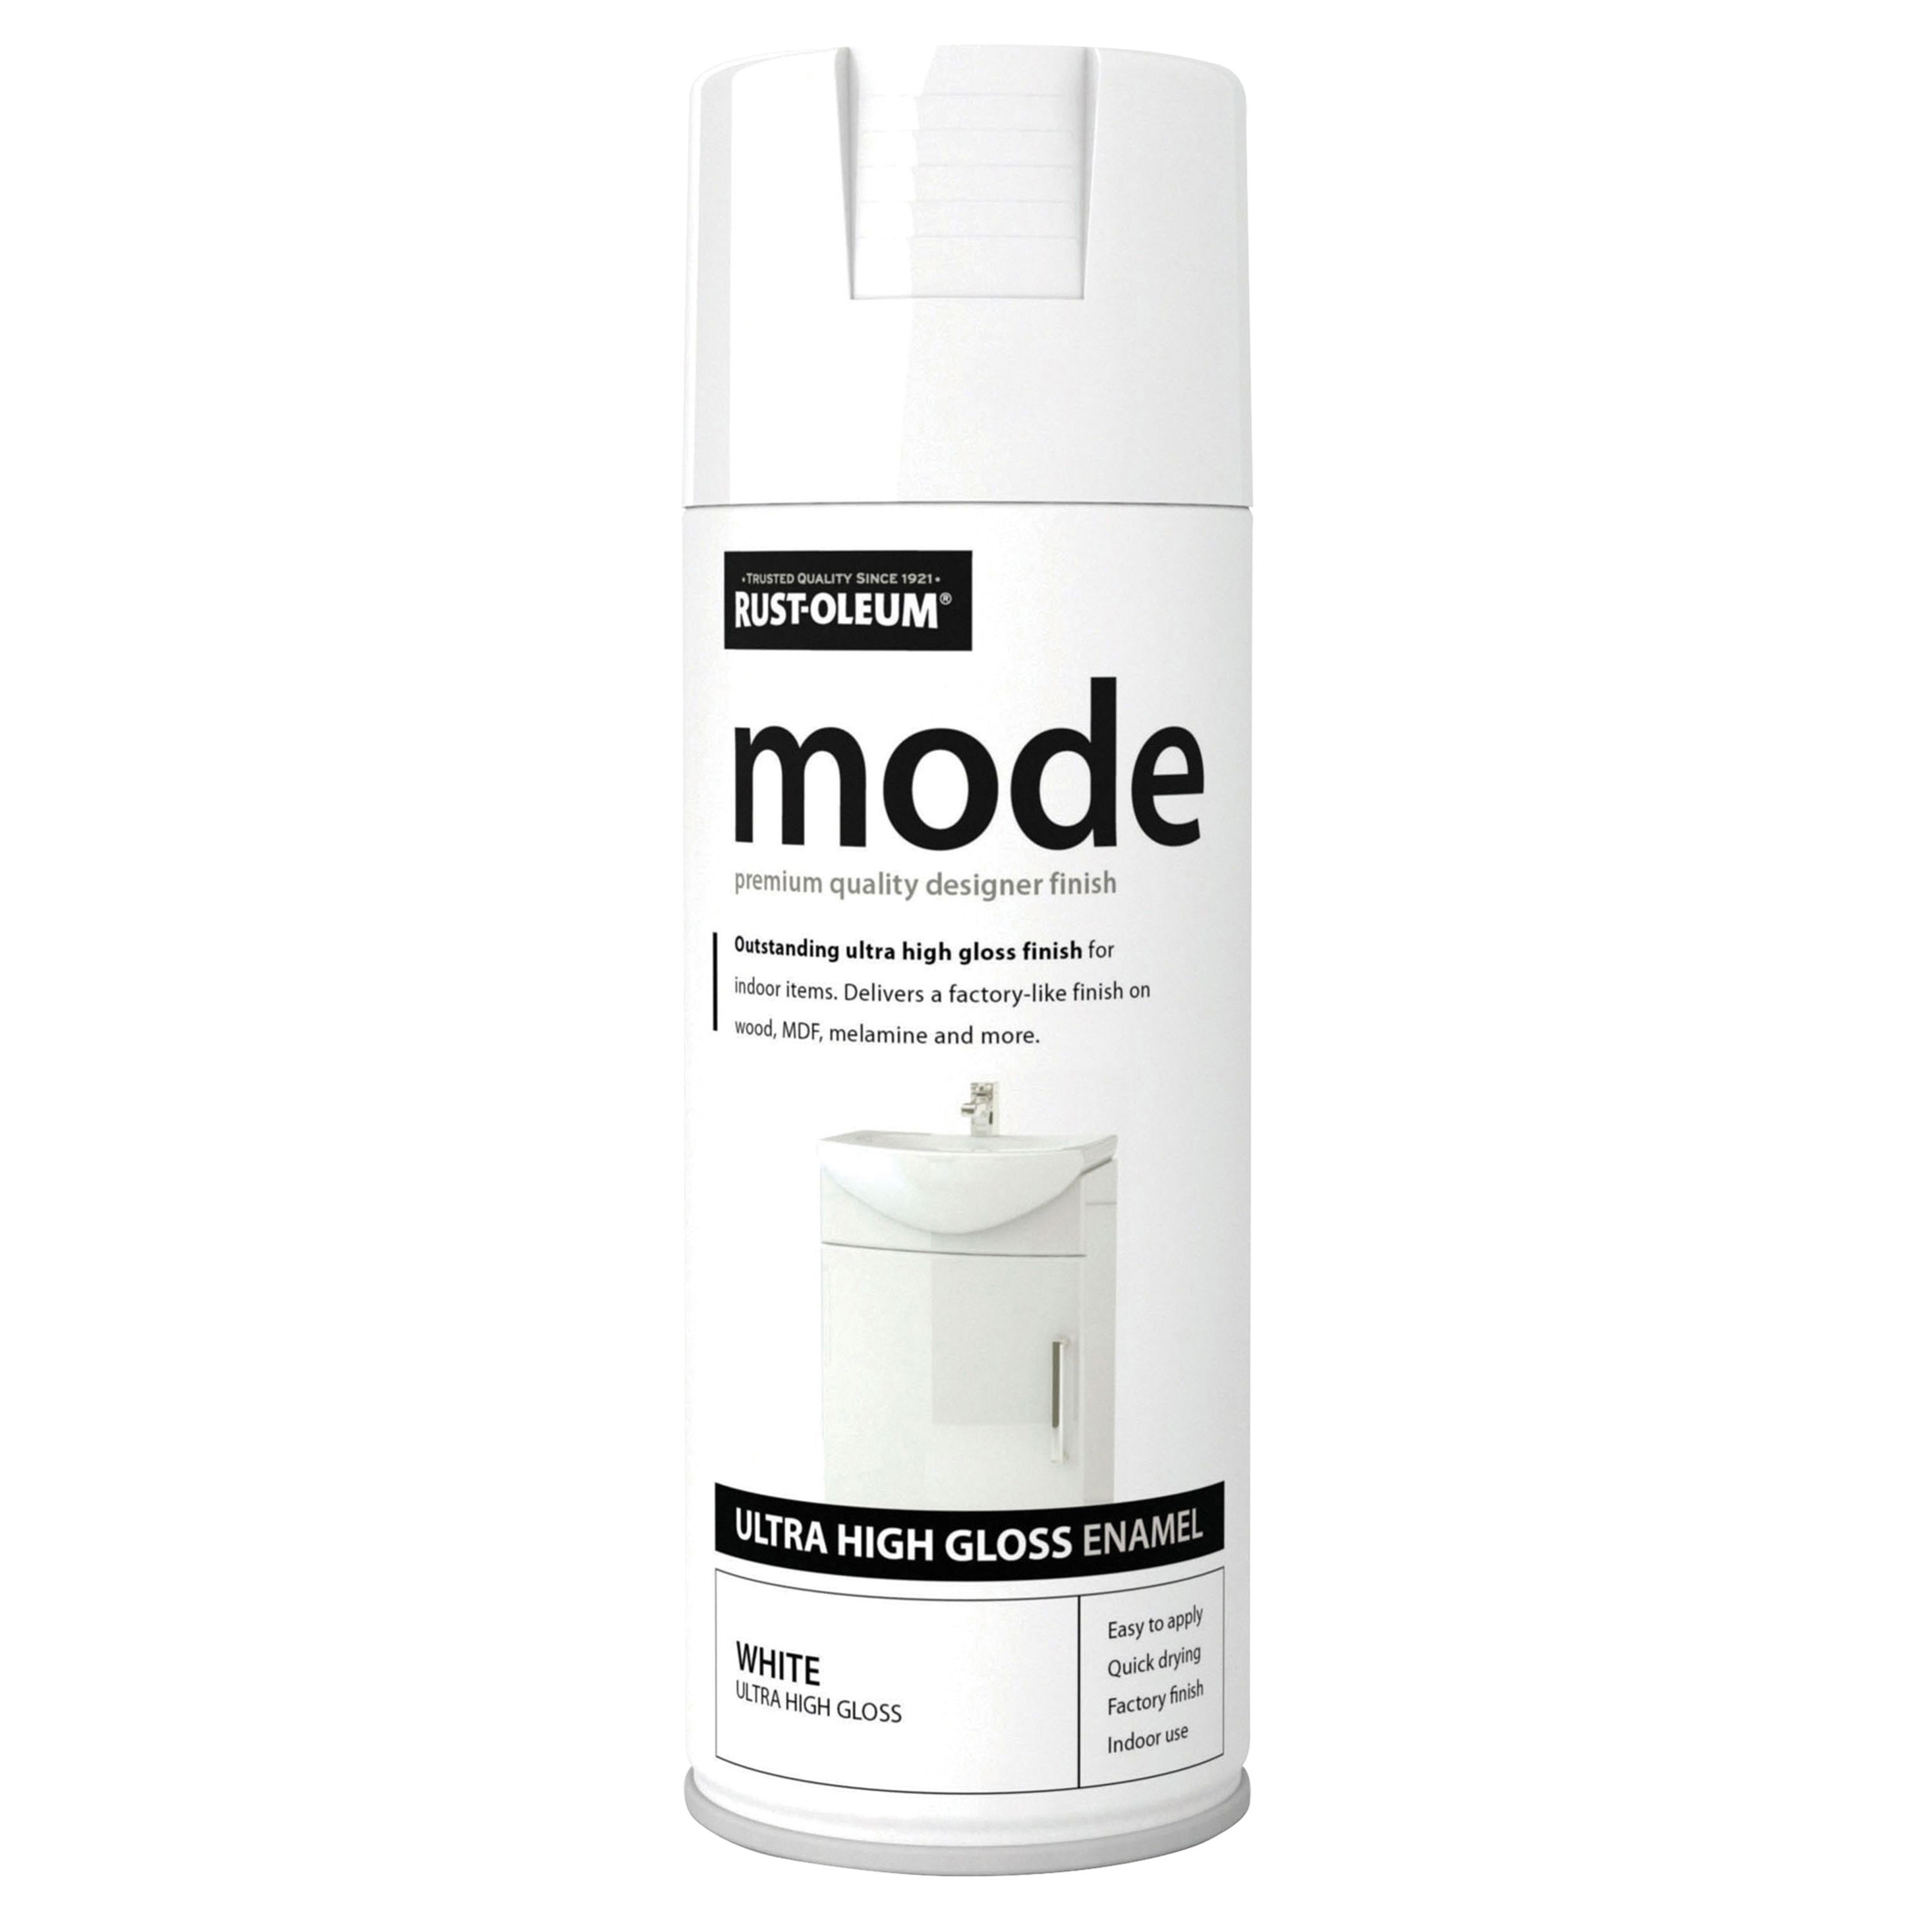 Rust-oleum Mode White Gloss Premium Quality Spray Paint 400 Ml